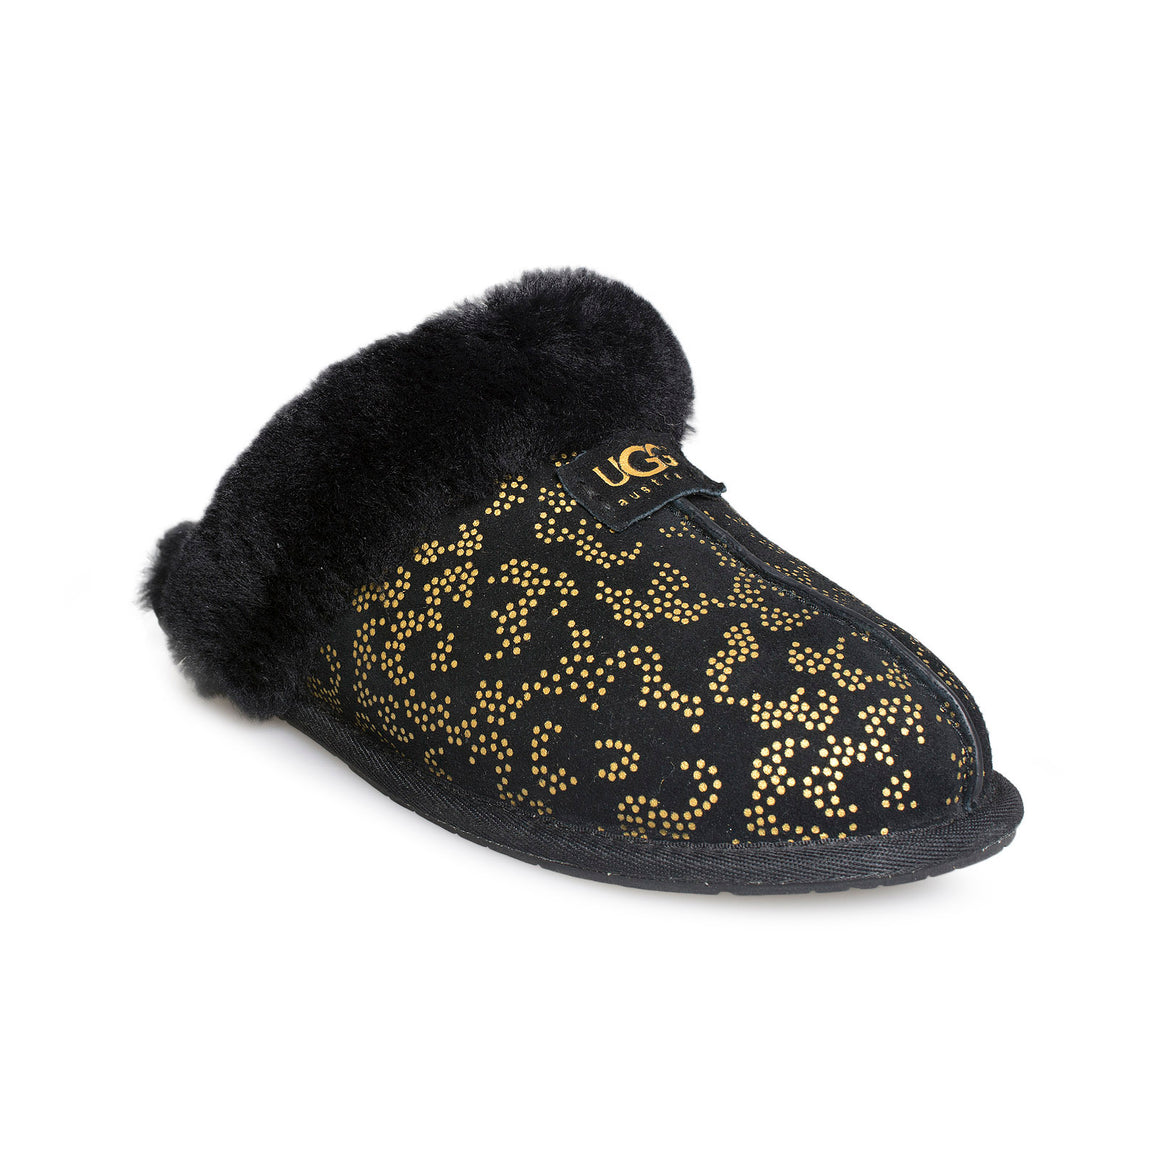 UGG Scuffette II Metallic Conifer Black Slippers - Women's